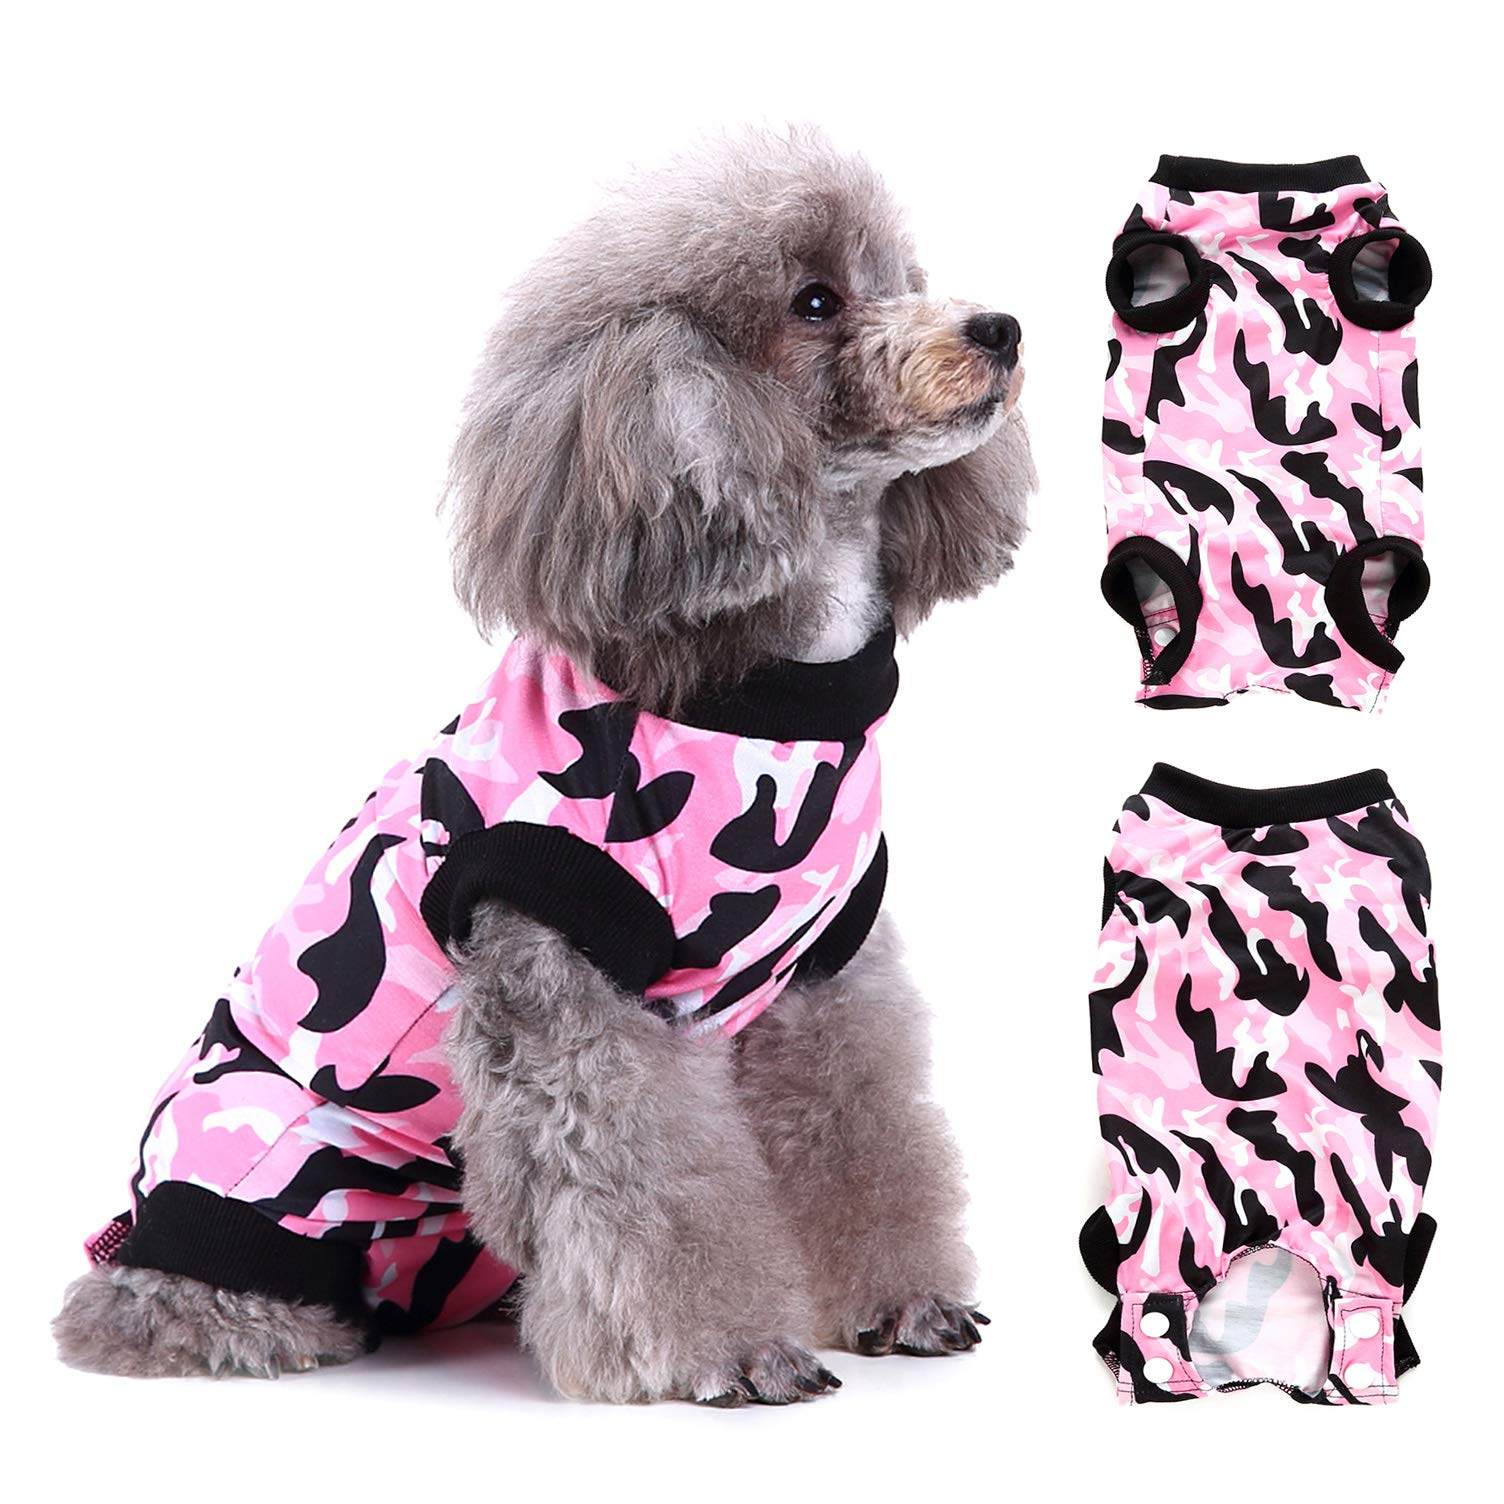 Ranphy Neoprene Recovery Suit for Dog Camouflage Pet Recovery Cone Alternative Waterproof Puppy Surgery Wearfor Abdominal Wounds Skin Diseases Anti-Lick Kitten Jumpsuit Pink Size L by Ranphy